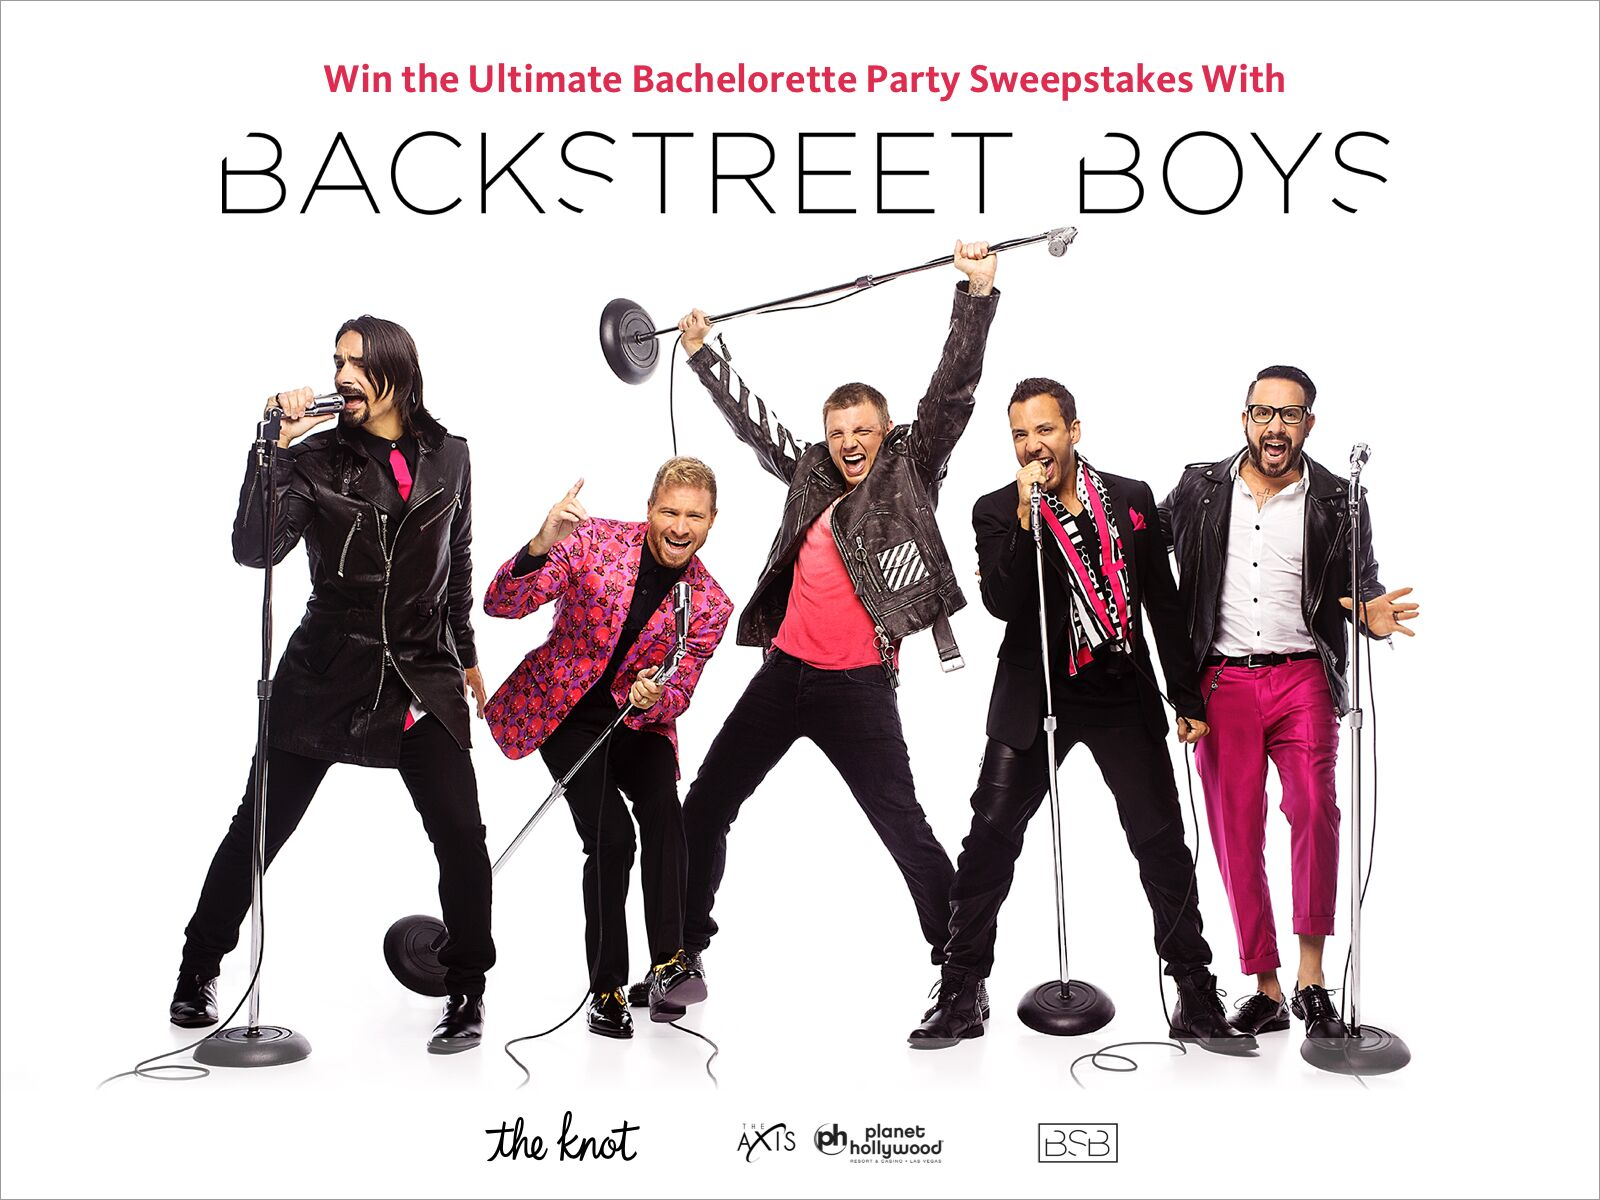 Here's the chance for you and five of your friends to meet the Backstreet Boys in Las Vegas!